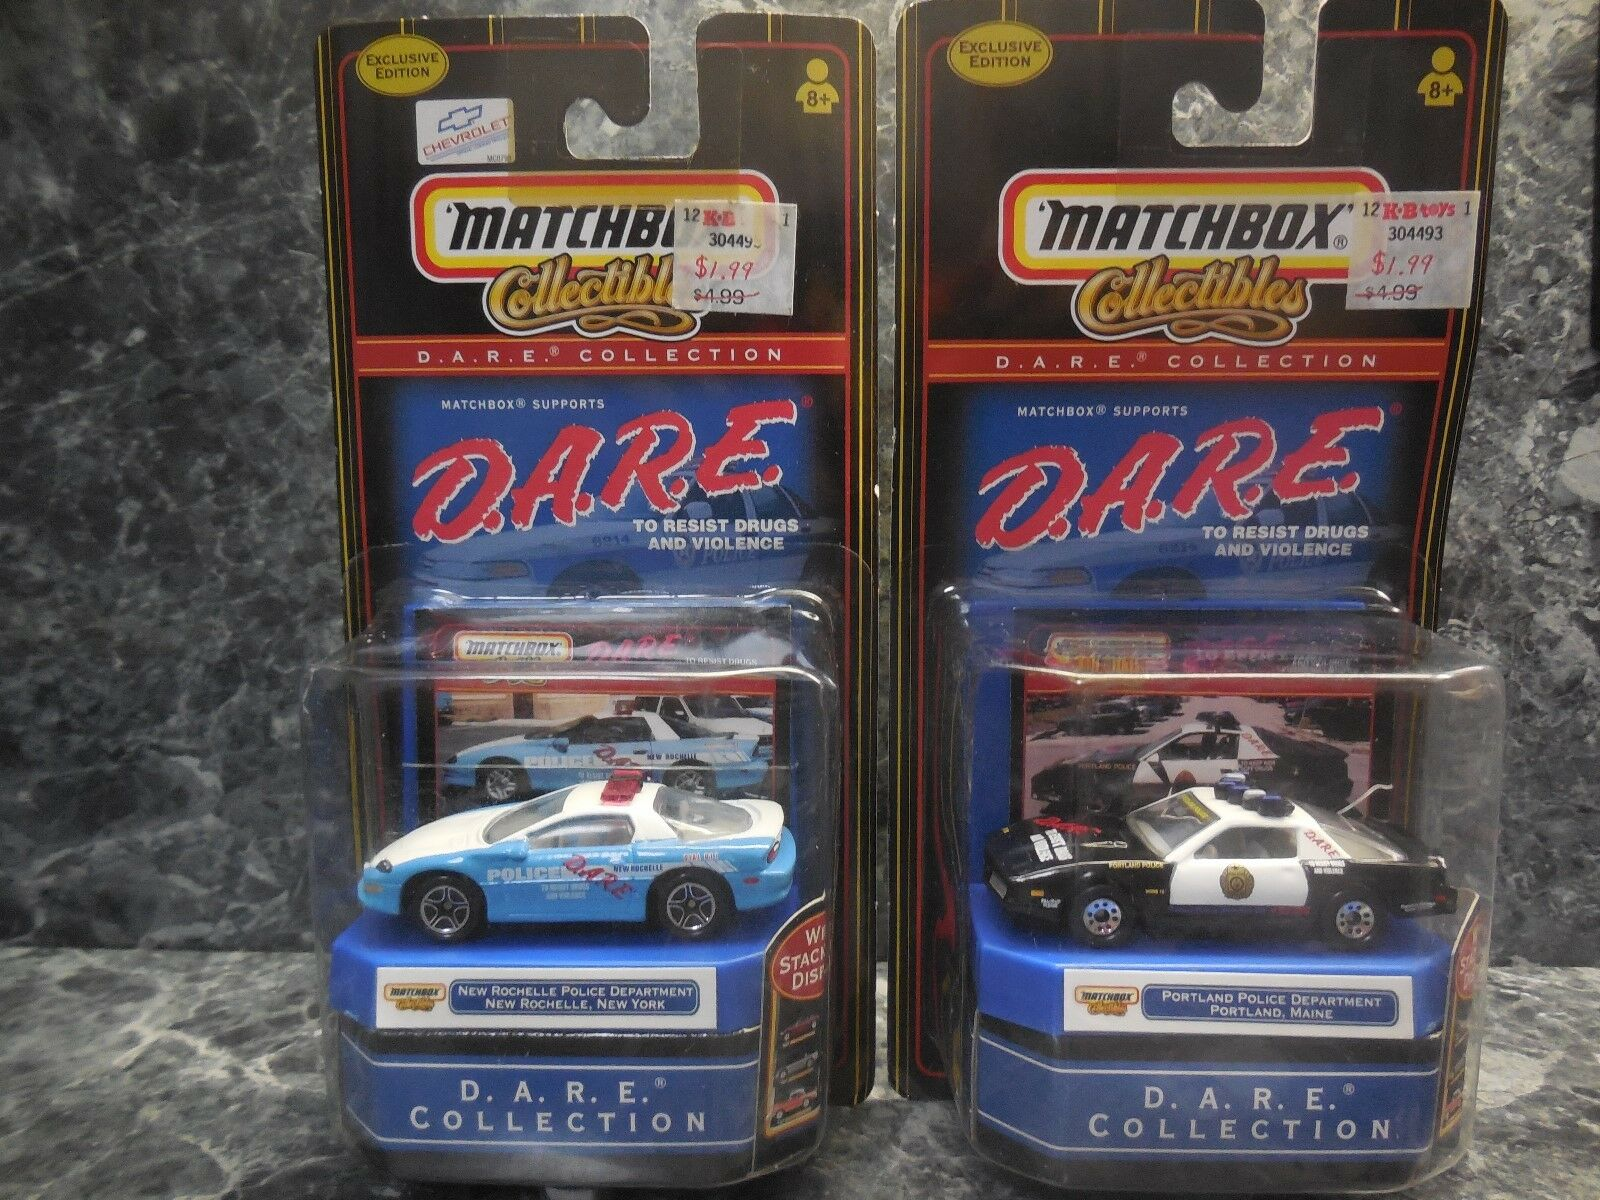 2 1999 matchbox dare police cars  new rochelle ,n.y.  portland, maine police